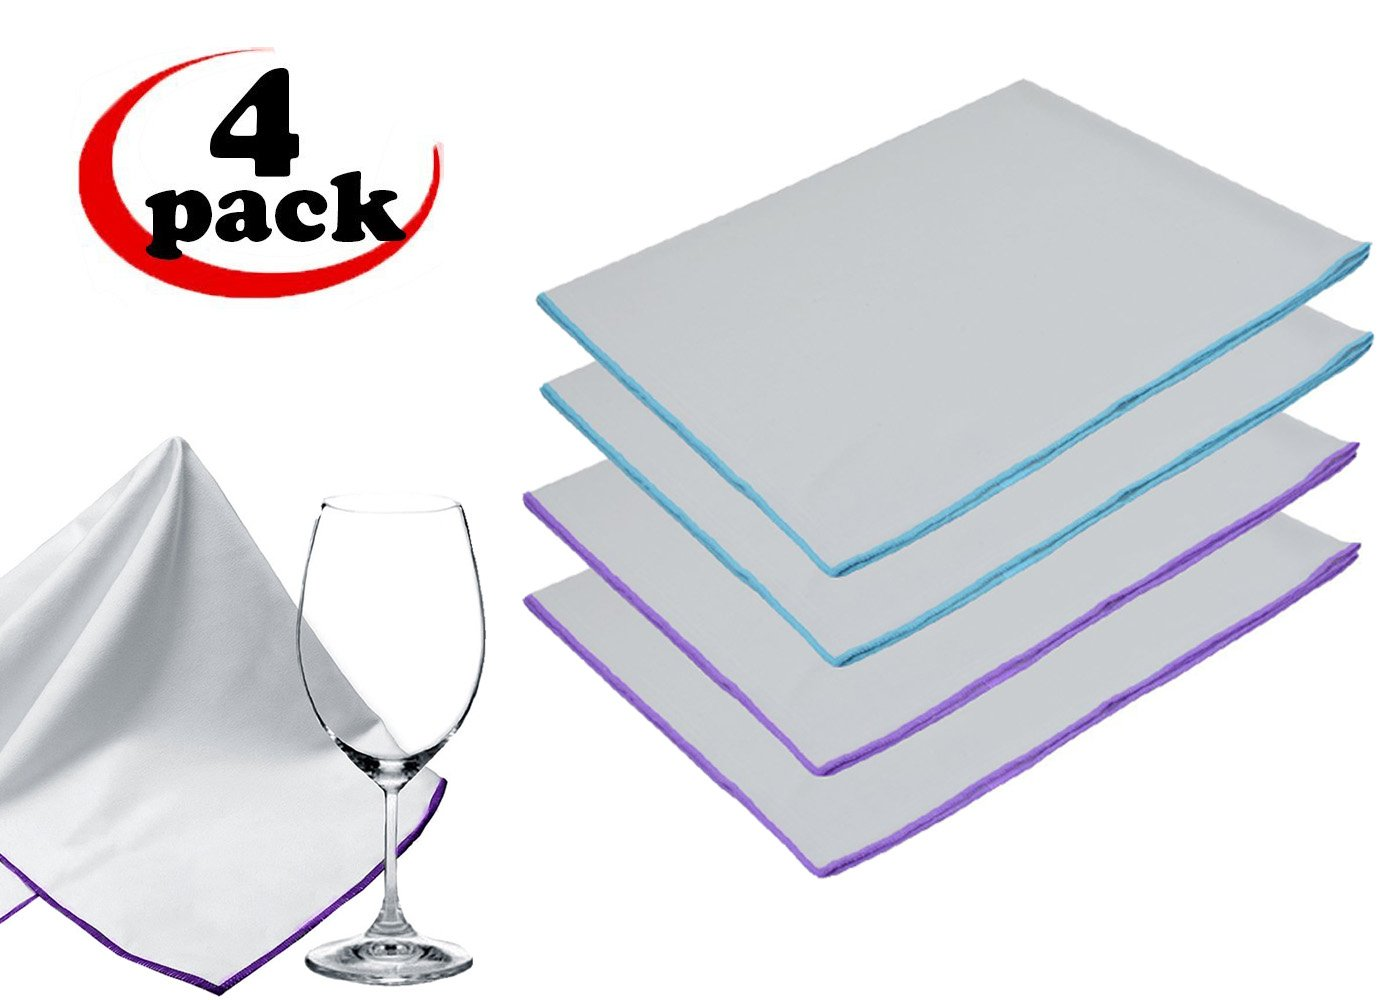 Sinland Microfiber Glass Polishing Cloths Thick Lint -free Drying Towels For Wine Glasses Stemware Dishes Stainless Appliances 20 Inch X 25 Inch Pack of 4